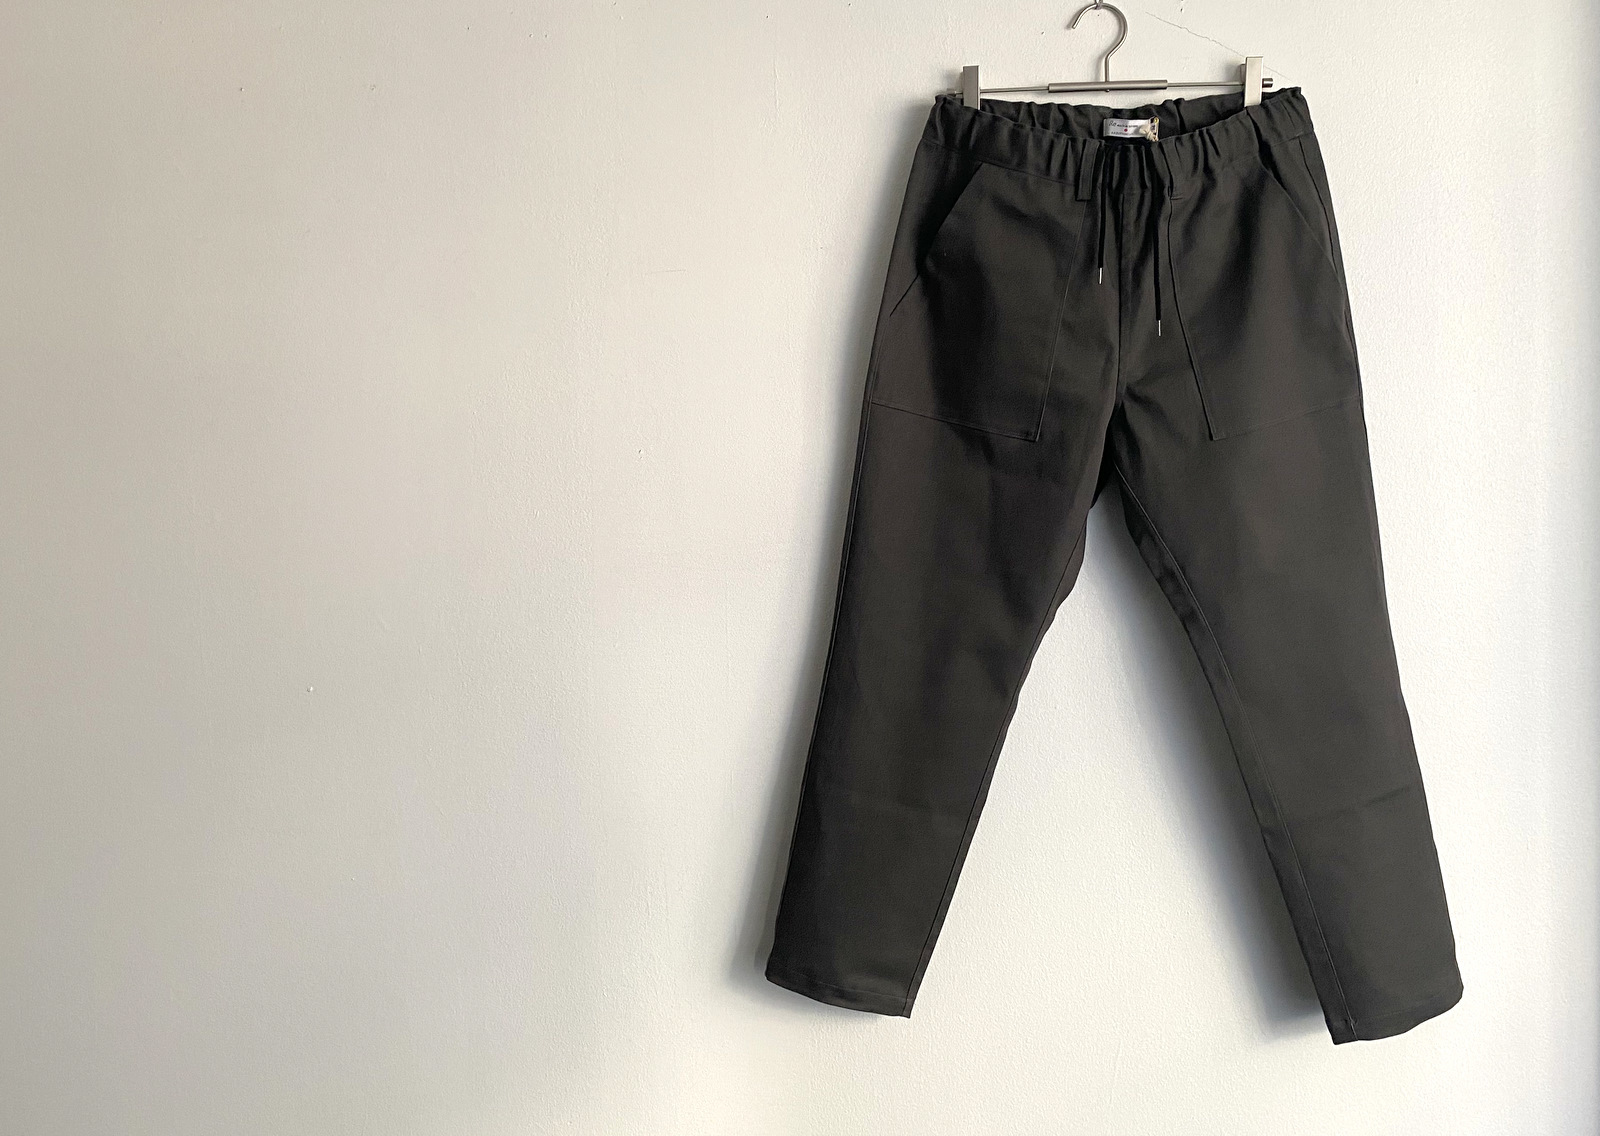 Cotton Drill Easy Slacks_c0379477_09564888.jpg